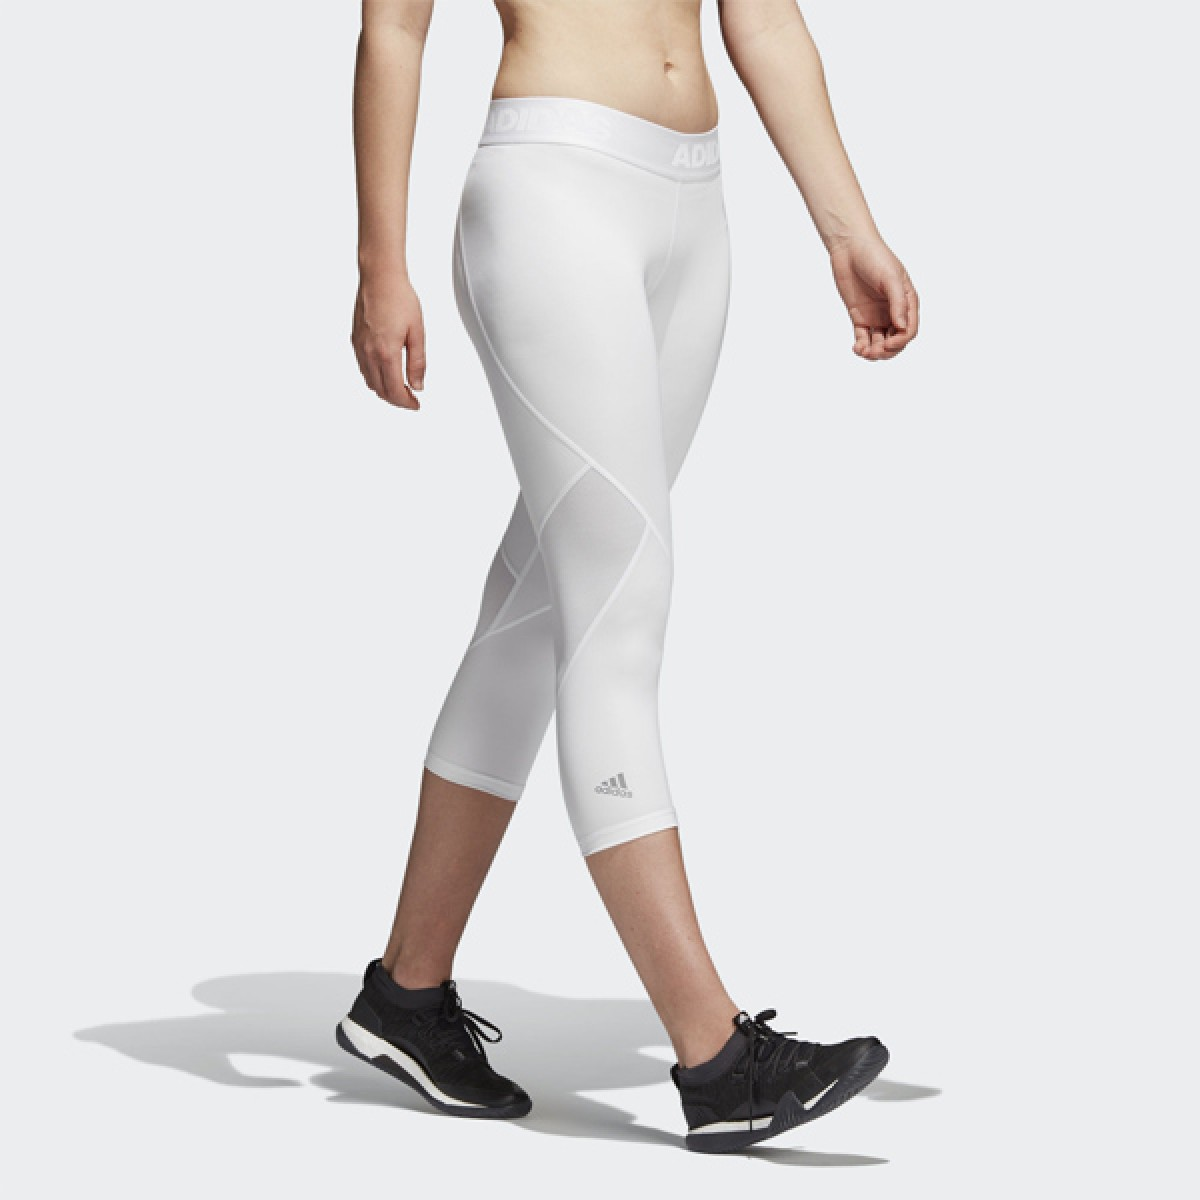 ADIDAS Womans Tight 3/4 'White' CE3966